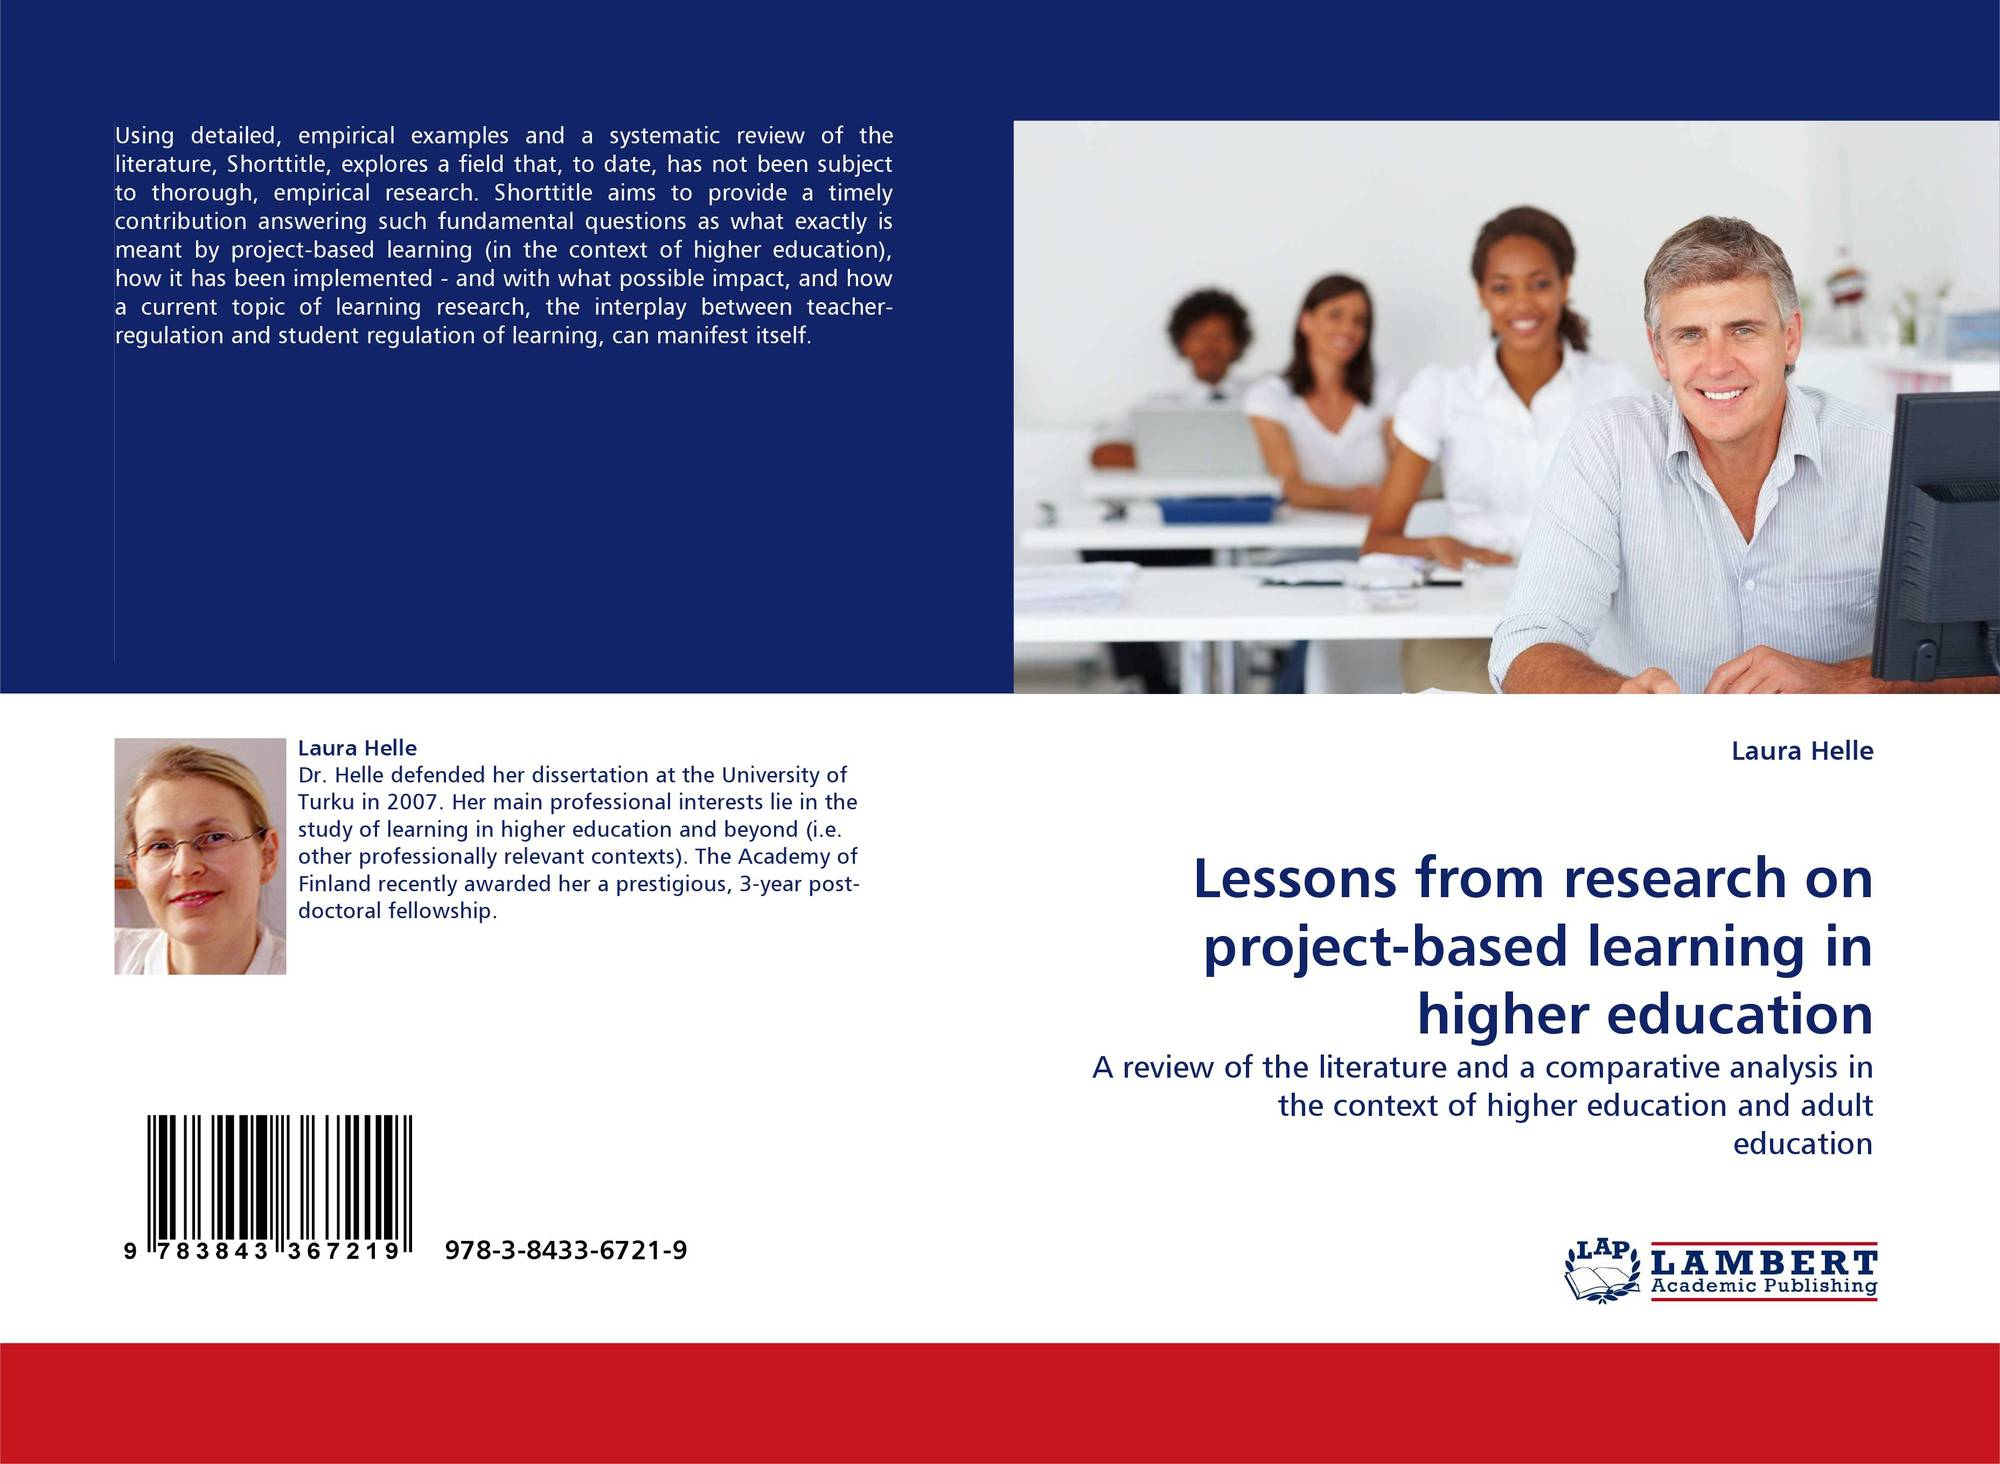 literature review of higher education as an It has attracted significant educational investment but its educational value is often contested these factors cause an emphasis on evaluating pedagogic 'worth' this paper seeks to redress the balance by reviewing the existing literature on the student experience of e-learning in higher education.